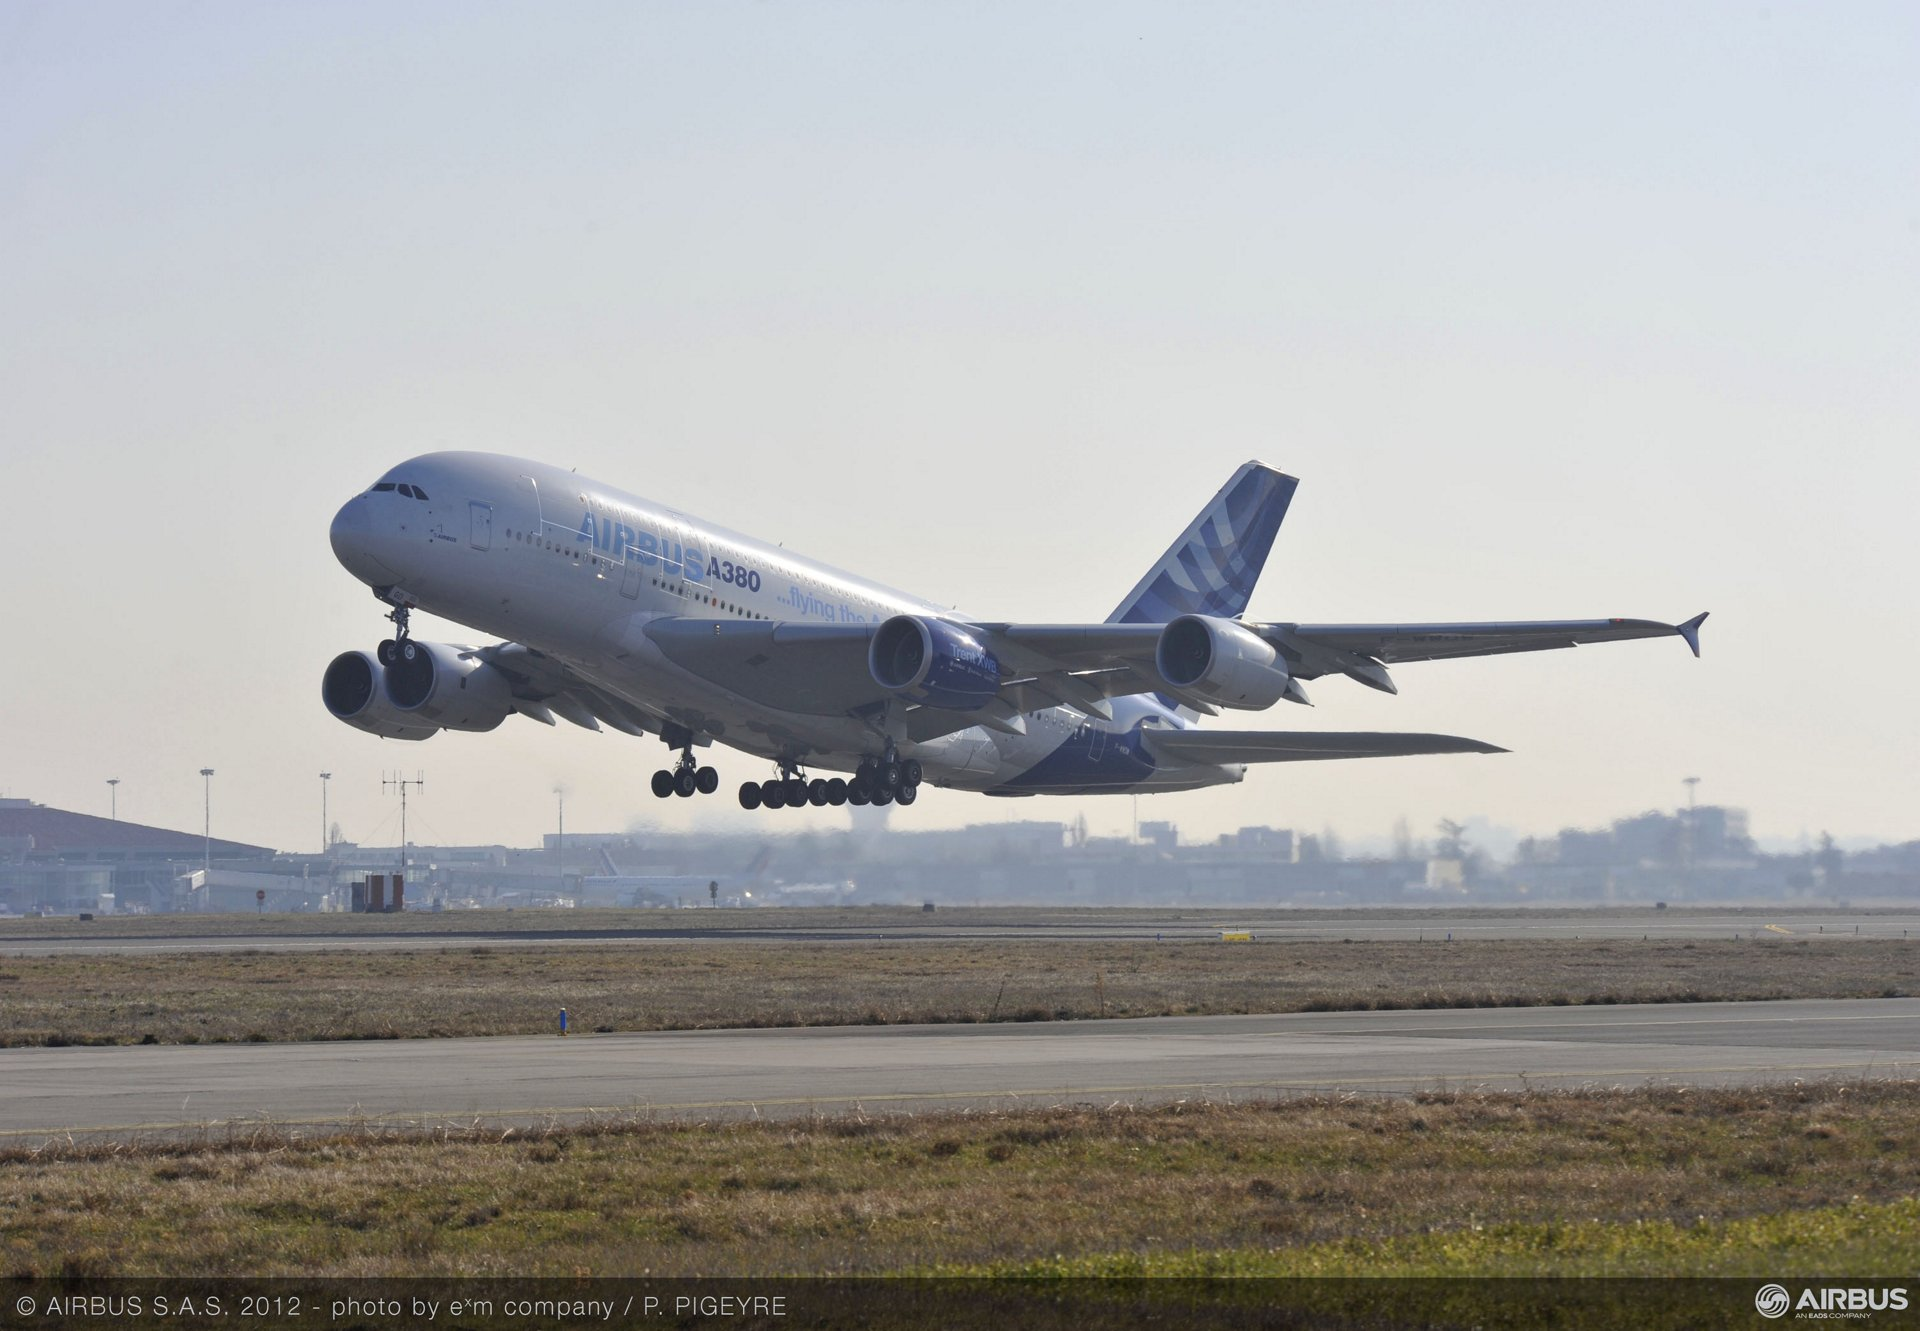 A350 Trent XWB engine first flight on A380 take off